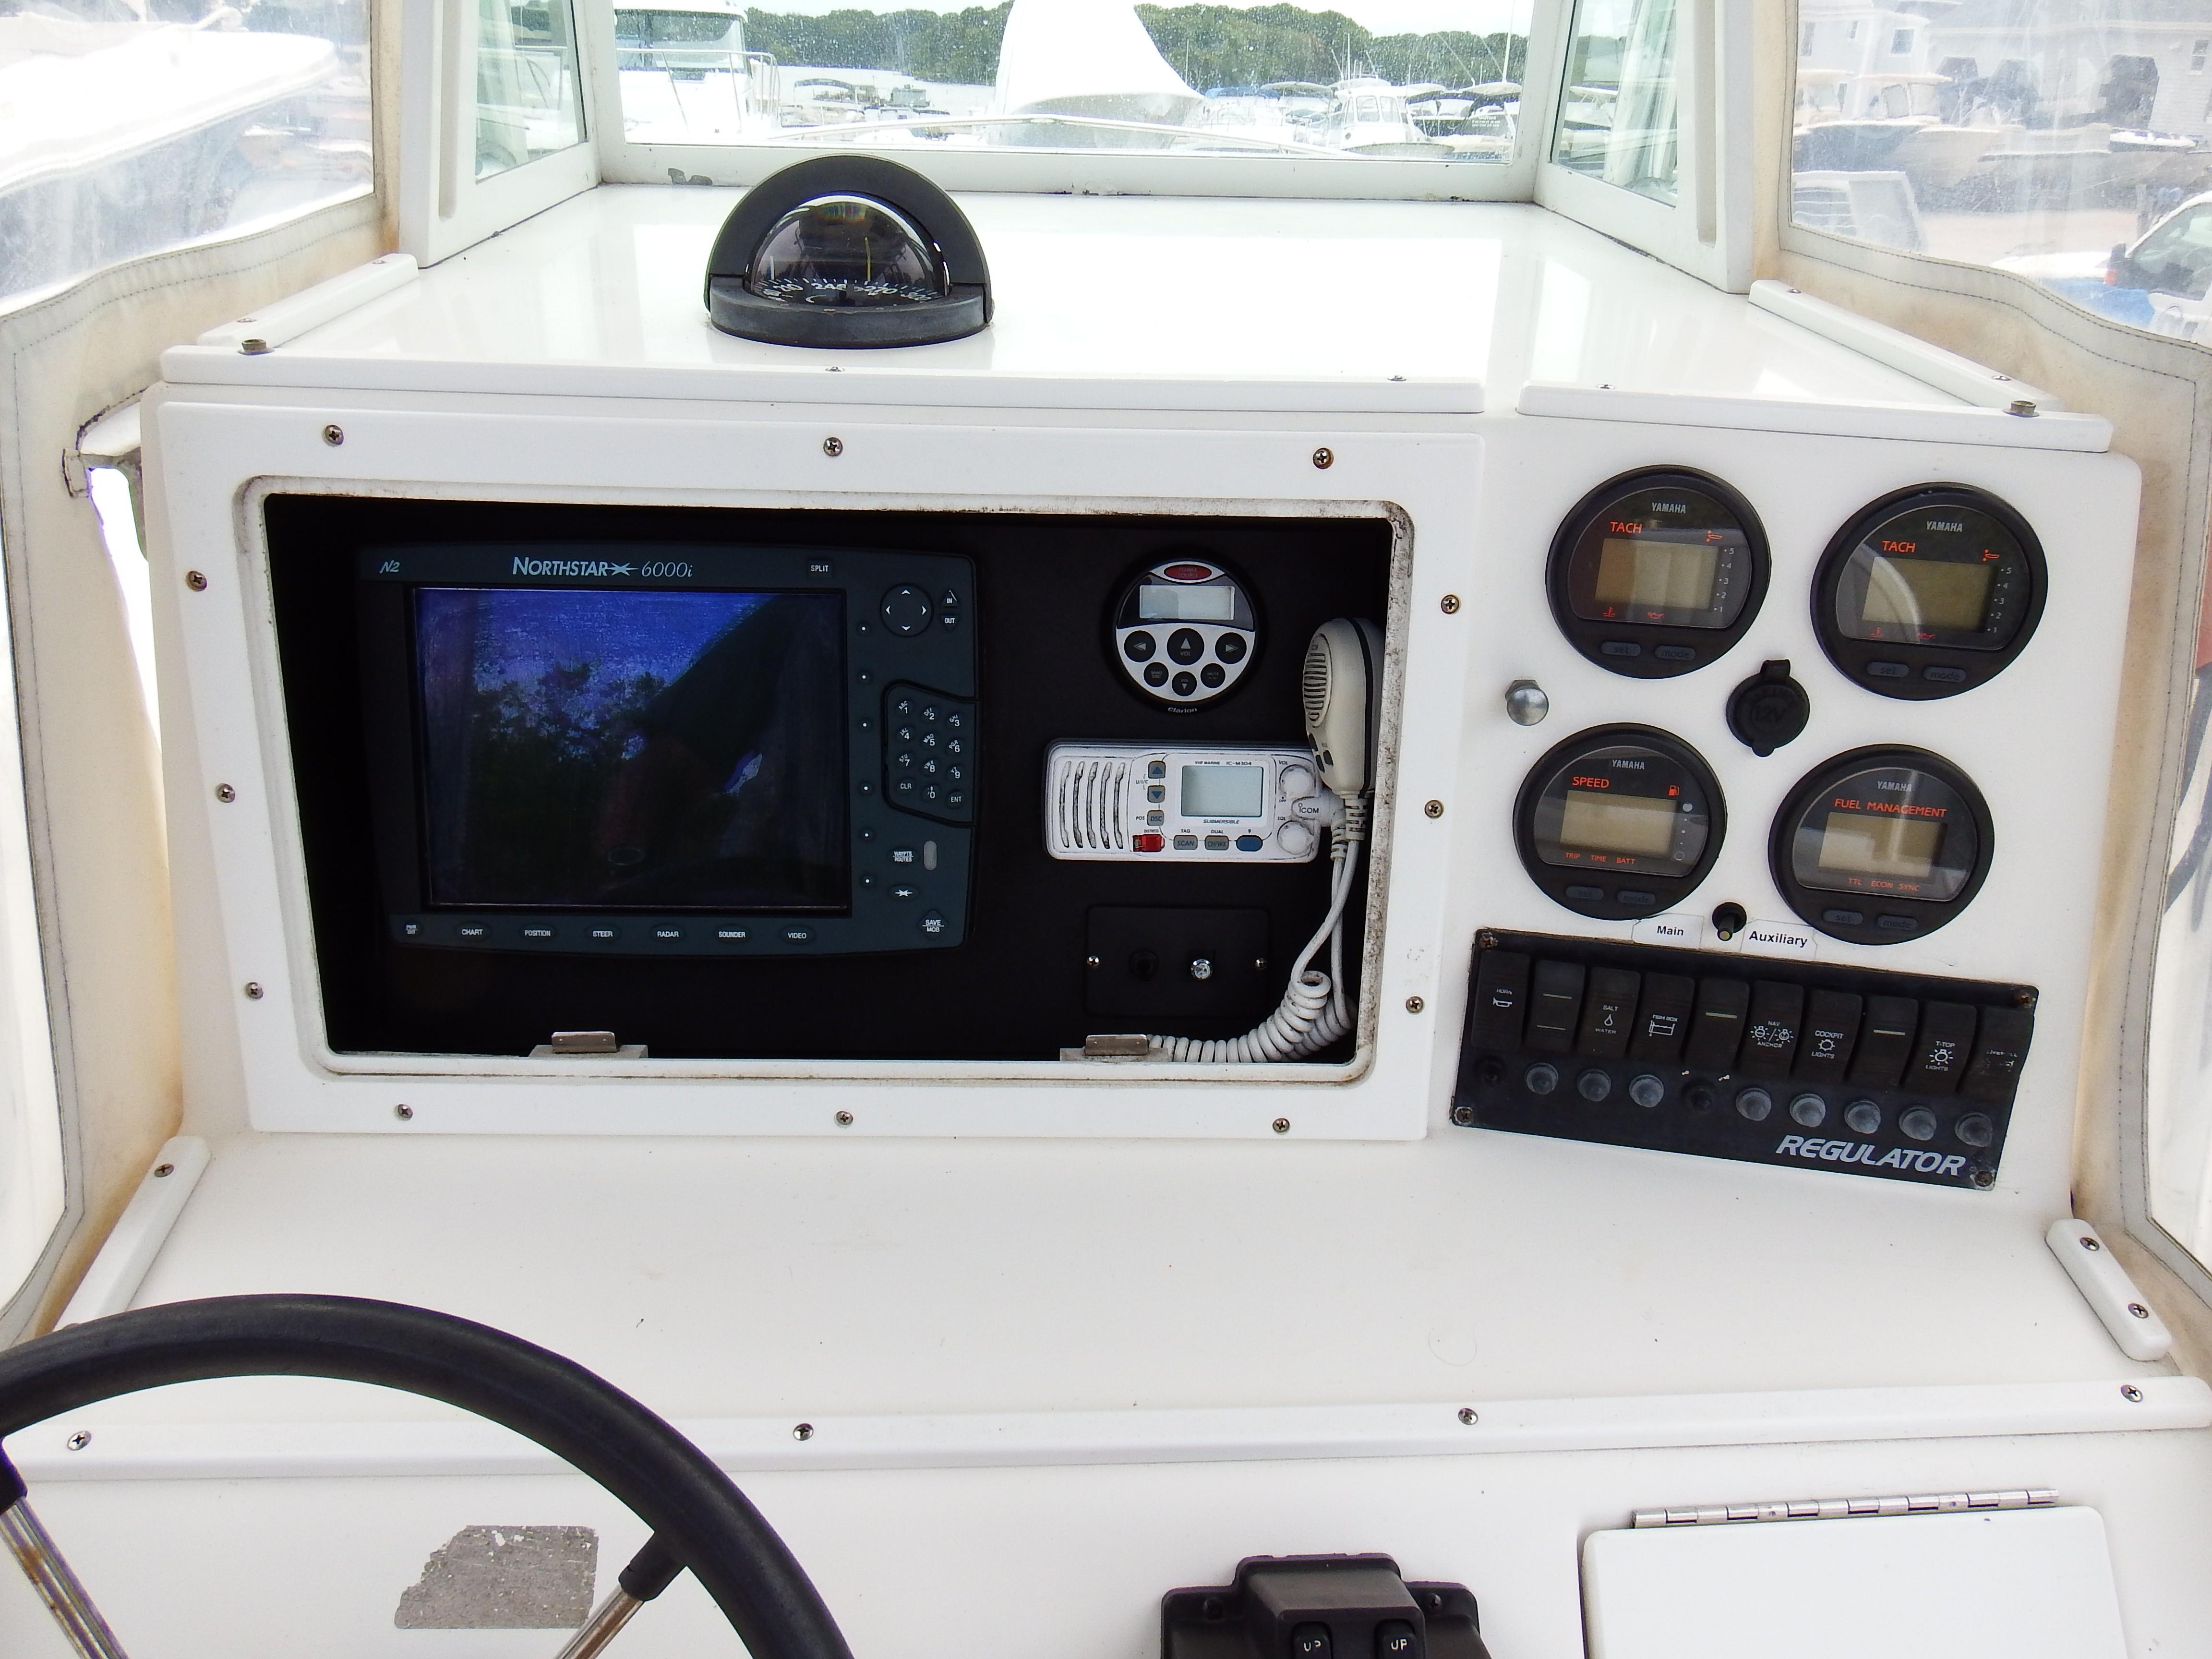 Maycraft Boat Gauges Wiring Diagram Electrical Diagrams Console Used Inventory Ocean House Marina